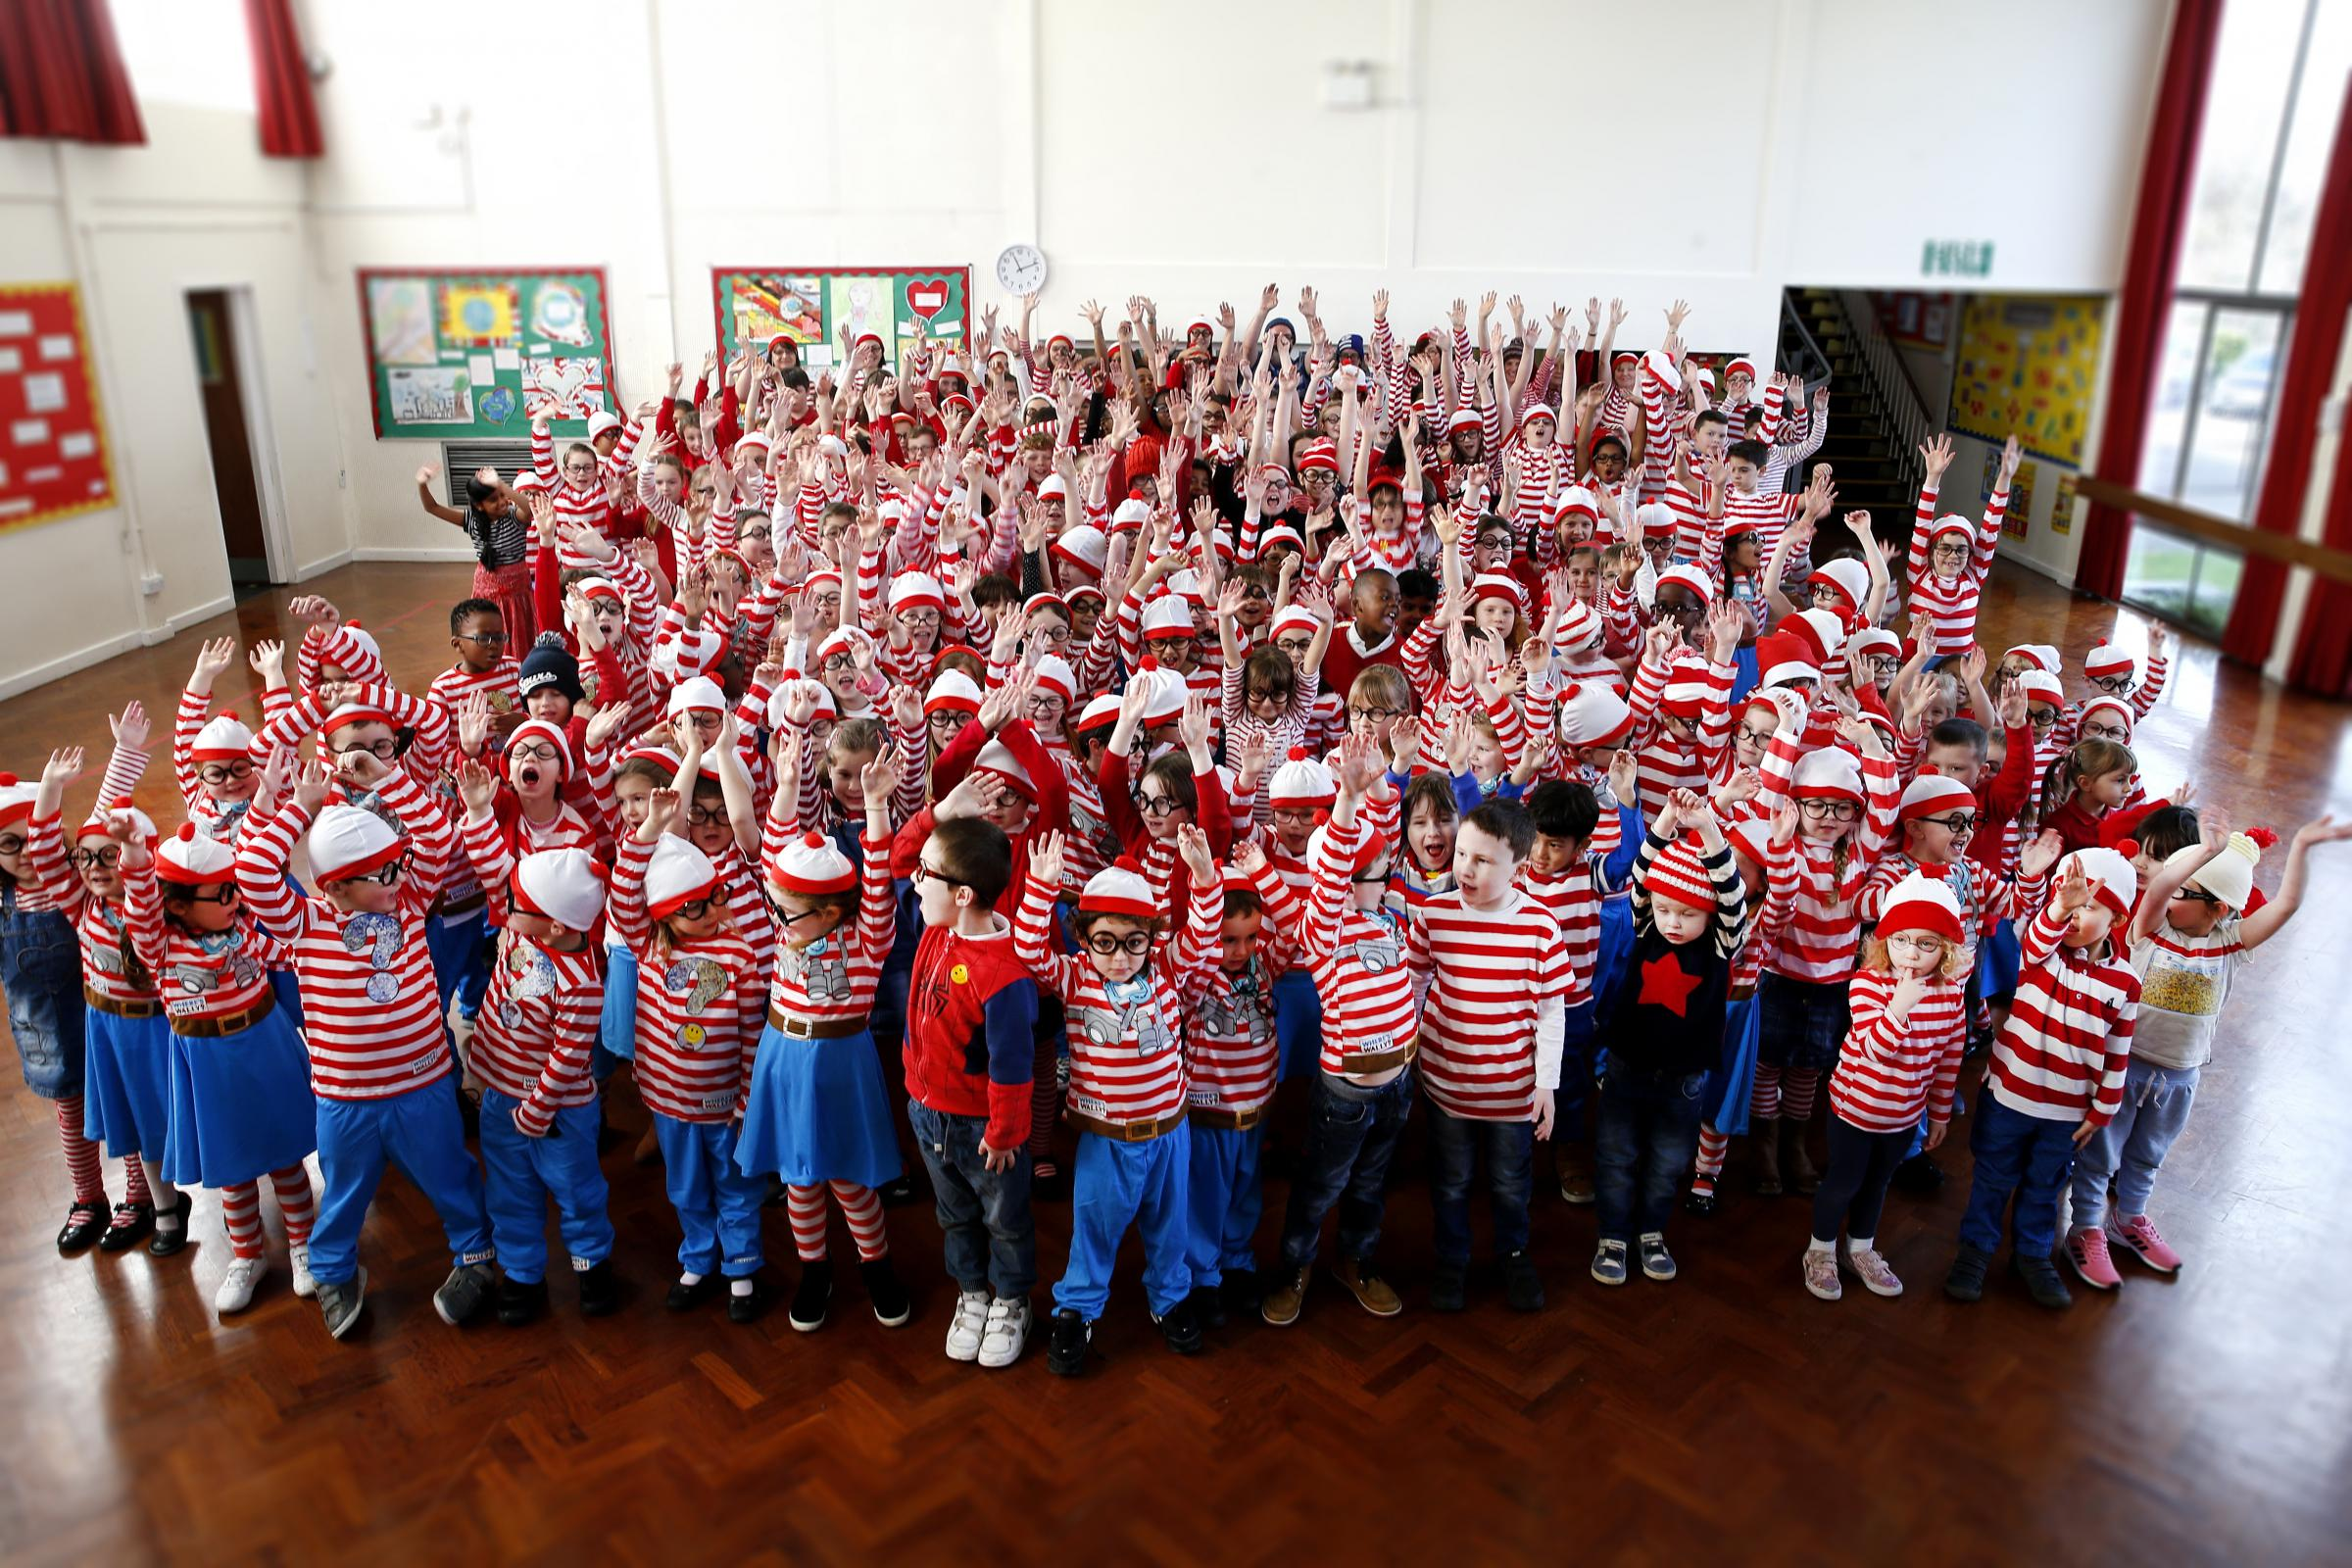 Children dressed as Where's Wally for World Book Day